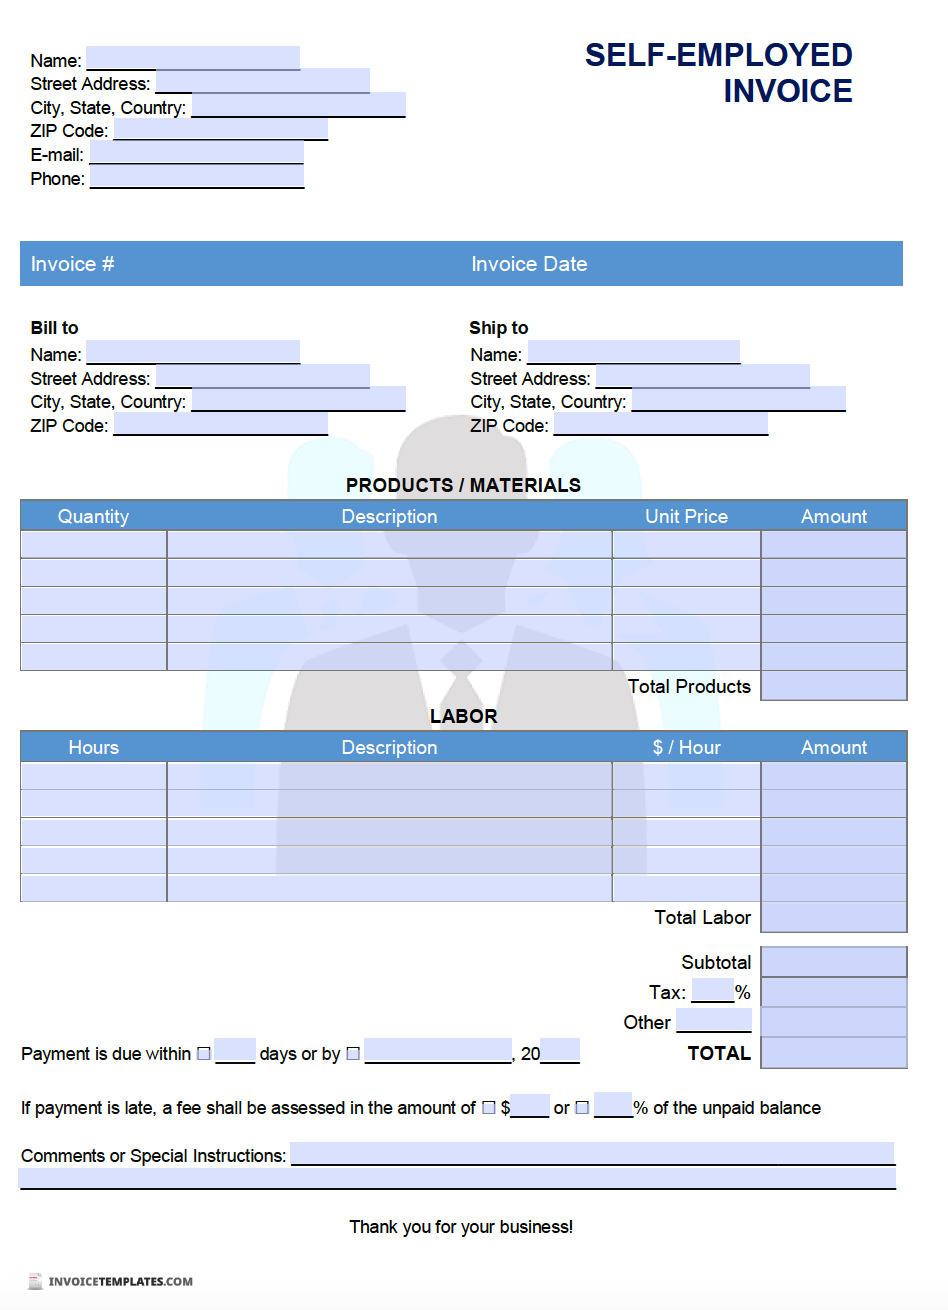 Free Self-Employed Invoice Template | PDF | WORD | EXCEL